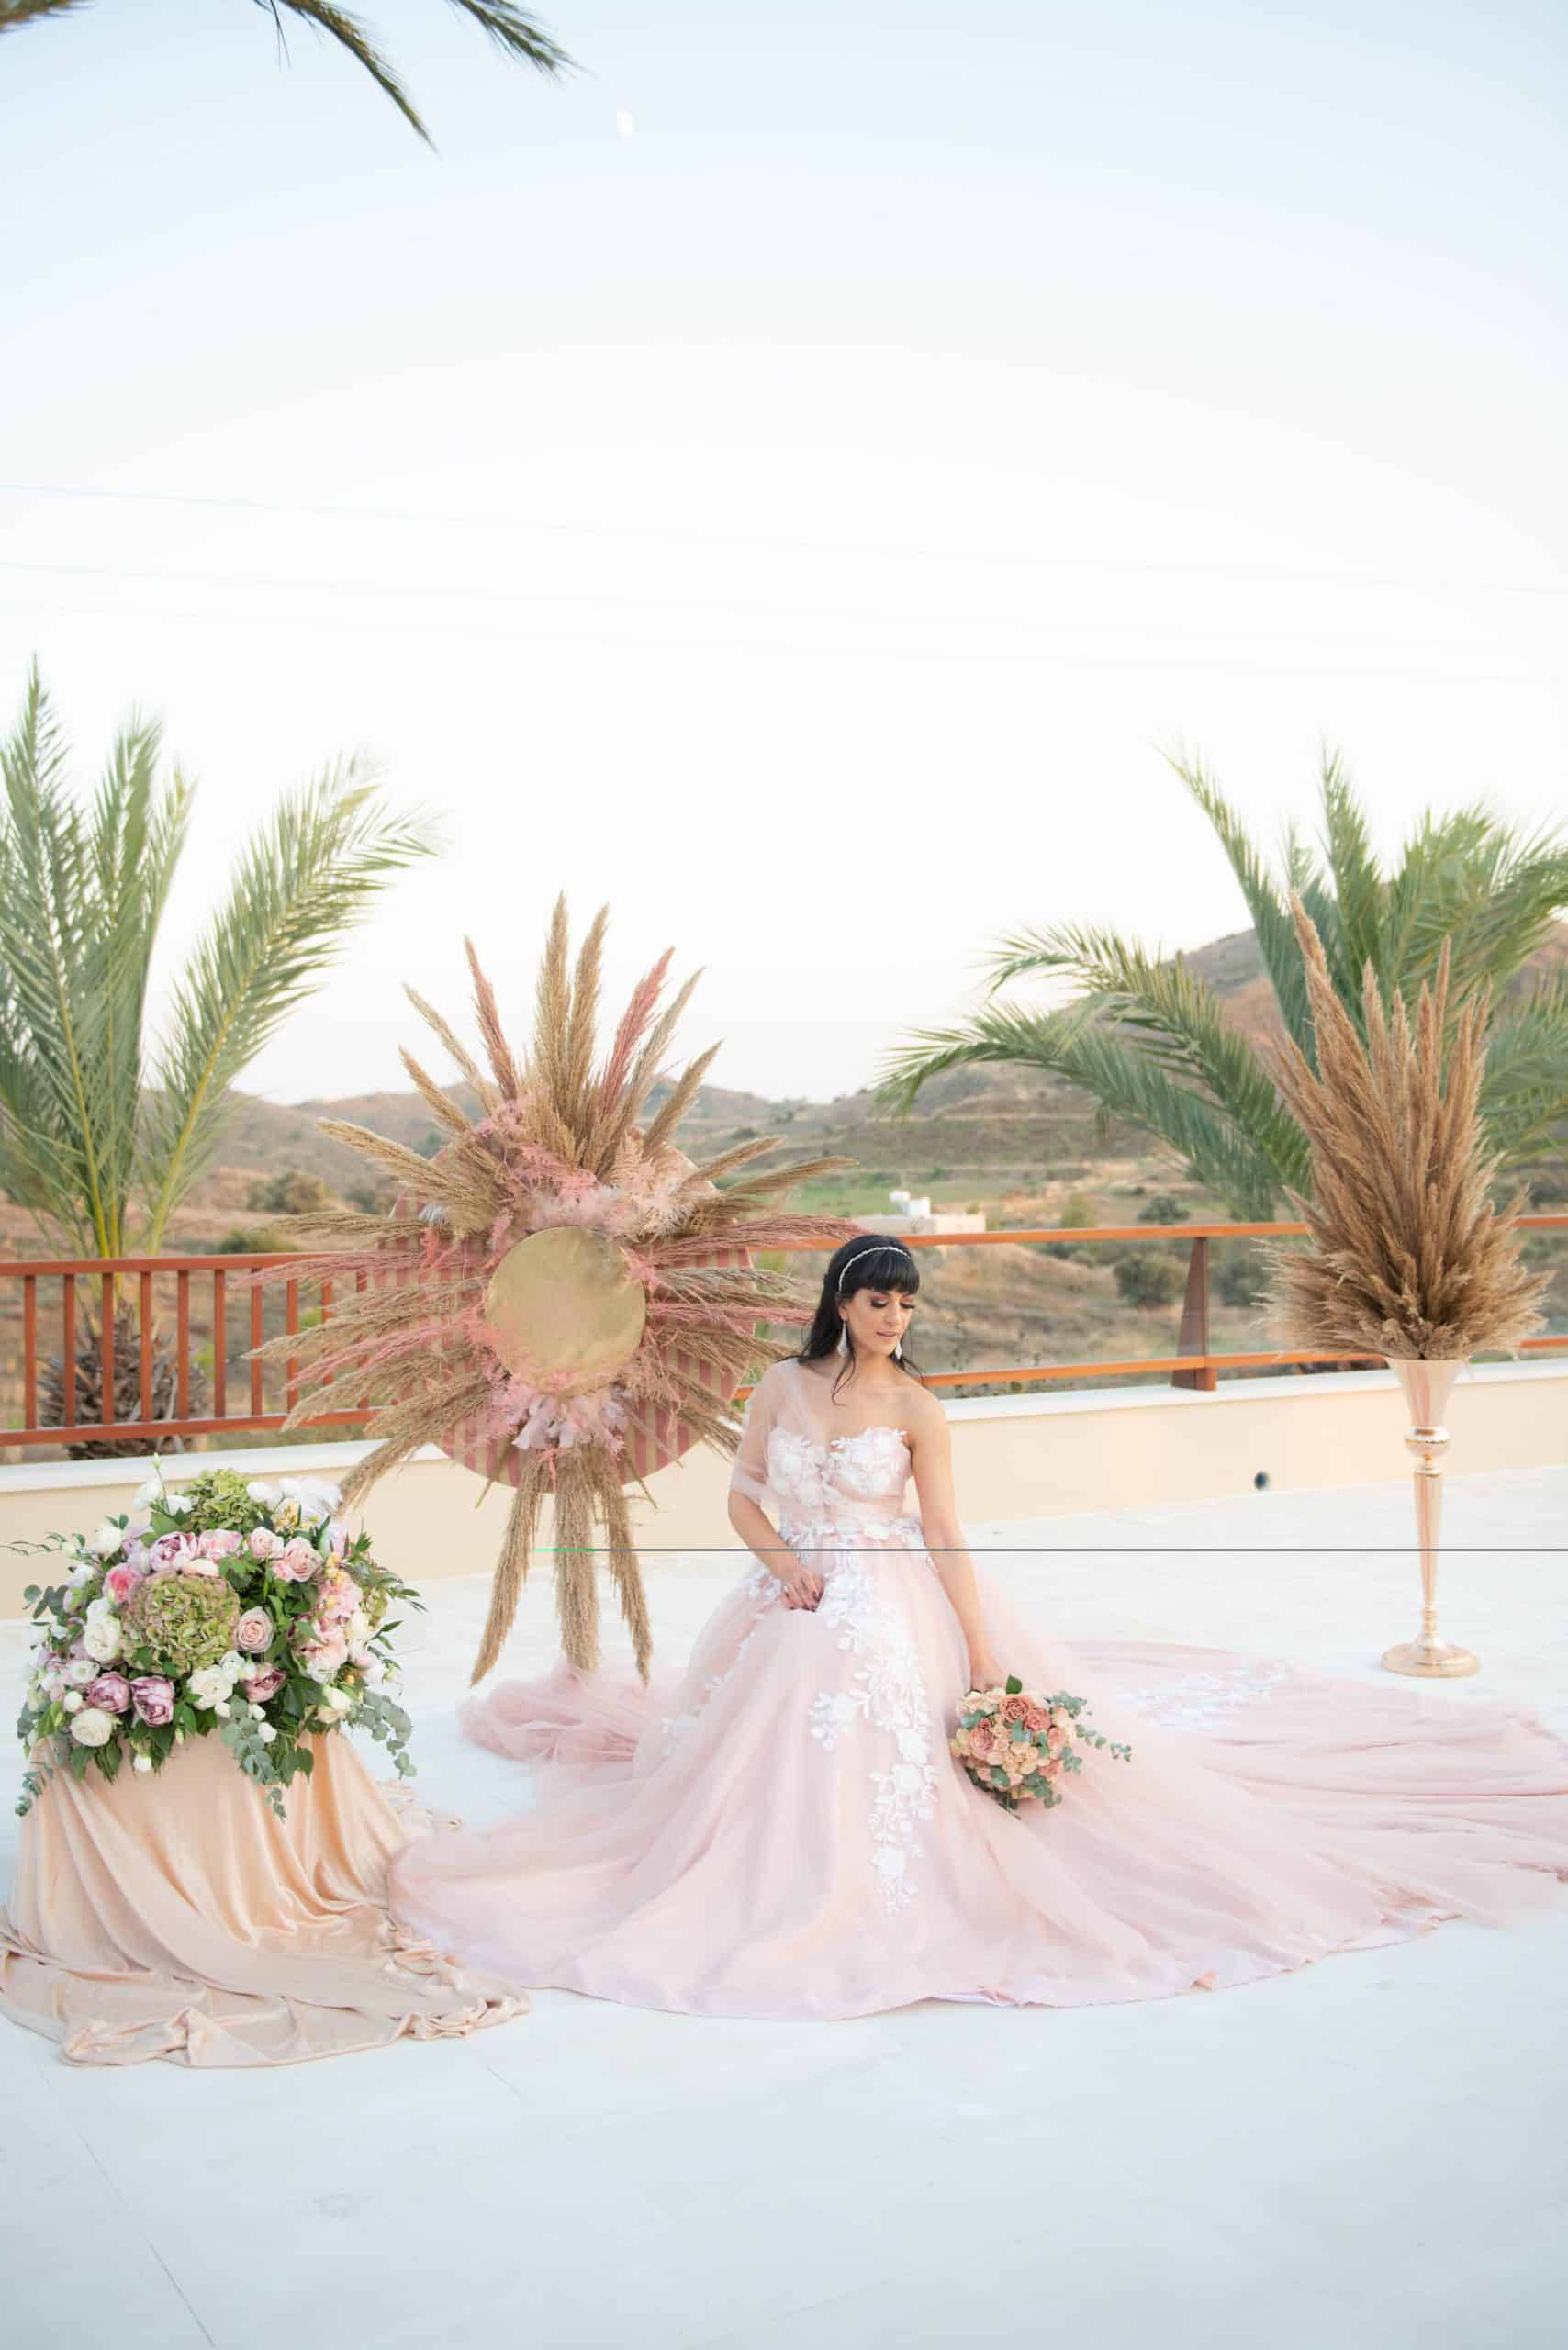 Ktima Oasis Cyprus - Weddings - Baptisms - Corporate Events - DSC 8870 scaled